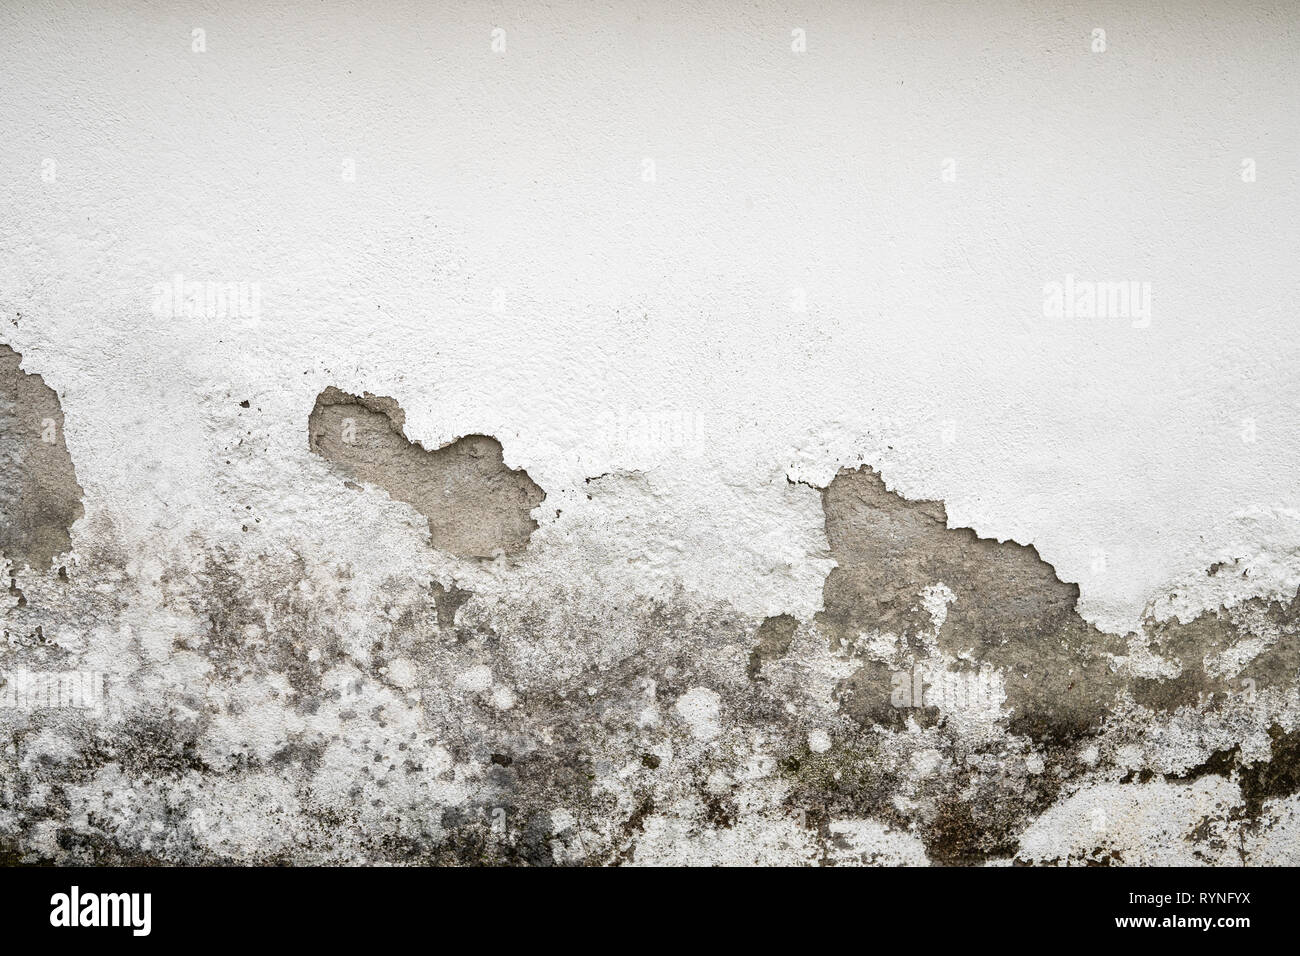 Concrete Painted Wall damaged by humidity - Stock Image